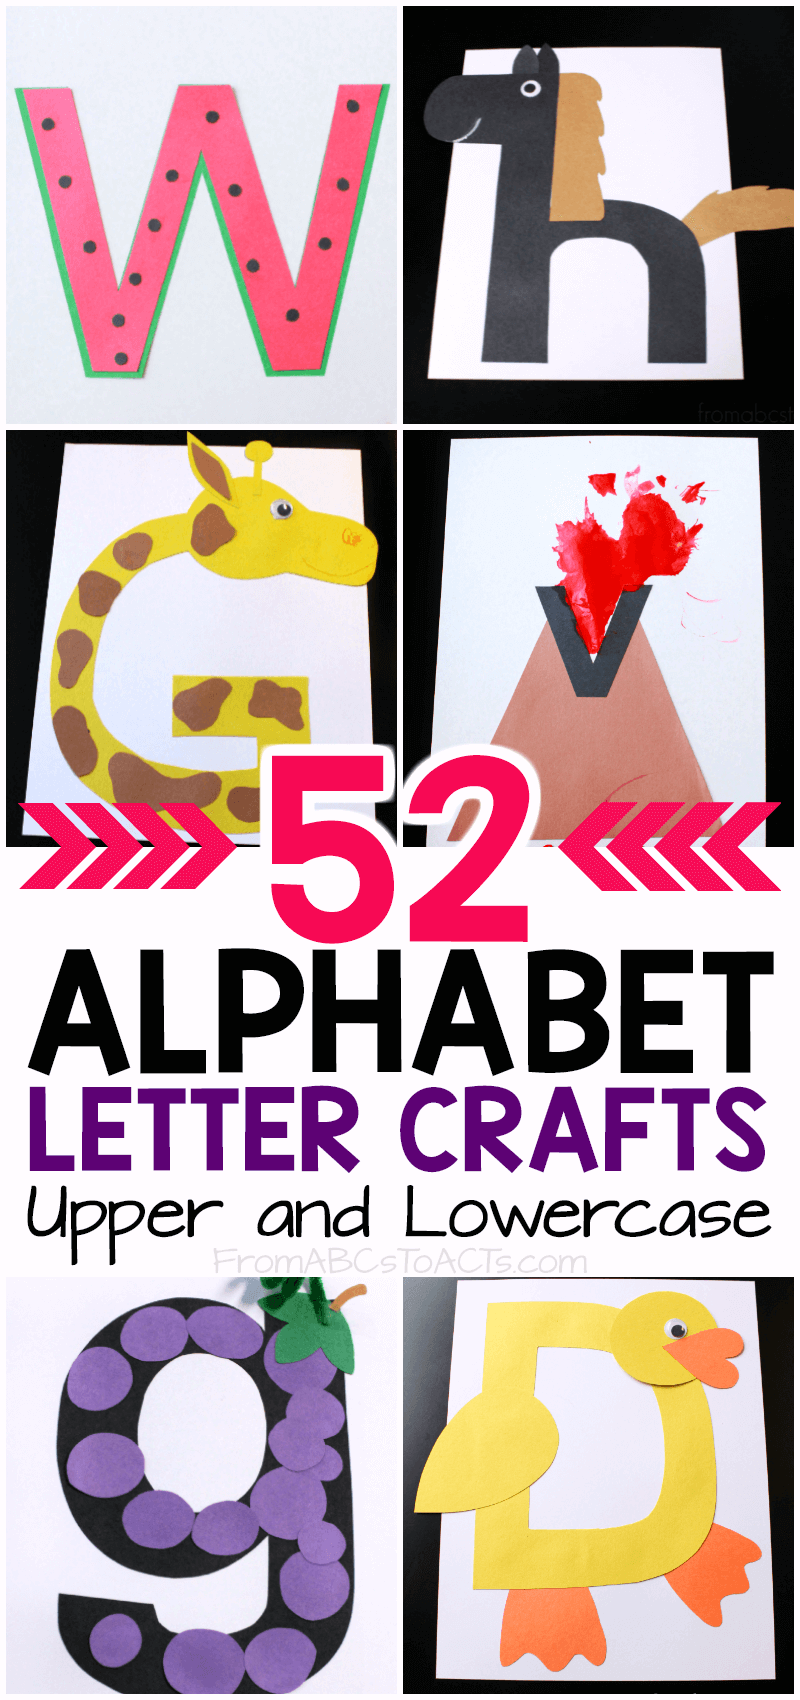 Oh my gosh!  My preschooler is going to absolutely LOVE making this alphabet book!  I love that it includes handwriting practice and he is going to have a blast making all of the letter crafts!